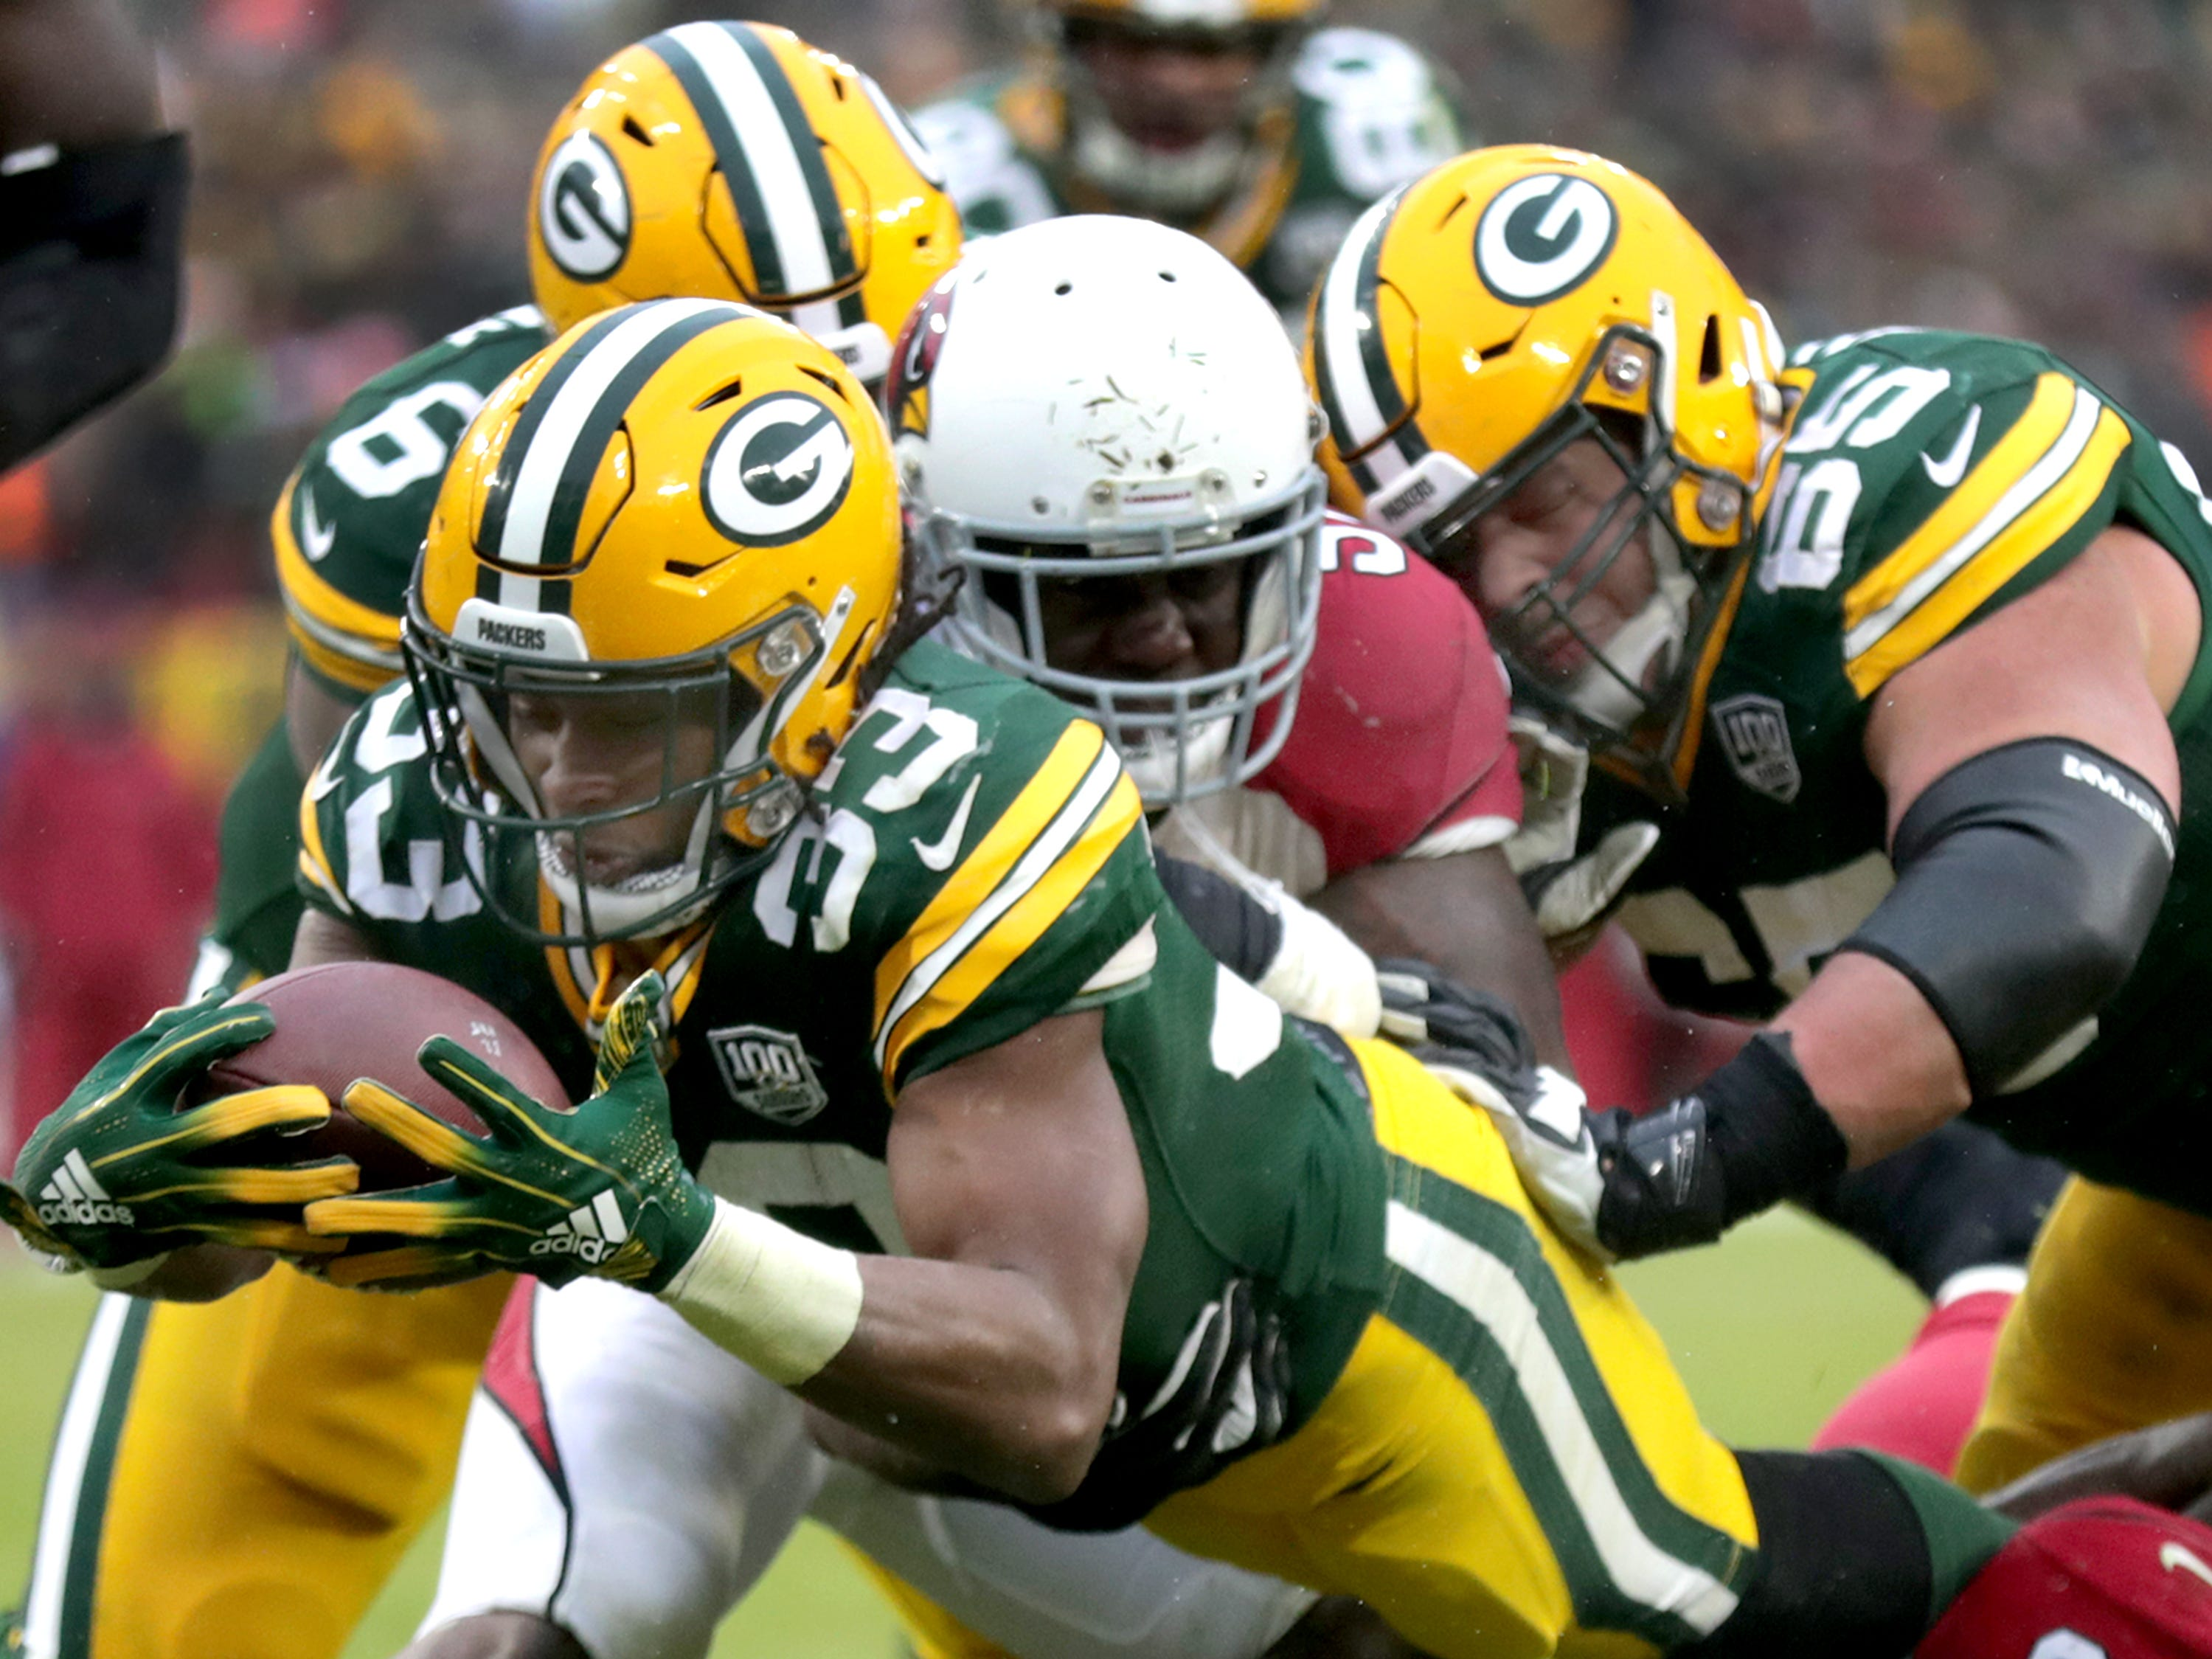 Green Bay Packers running back Aaron Jones rushes for a late fourth quarter touchdown, evening the score up at 17 each, against the Arizona Cardinals during their football game on Sunday, December 2, 2018, at Lambeau Field in Green Bay, Wis. Arizona defeated Green Bay 20 to 17. Wm. Glasheen/USA TODAY NETWORK-Wisconsin.